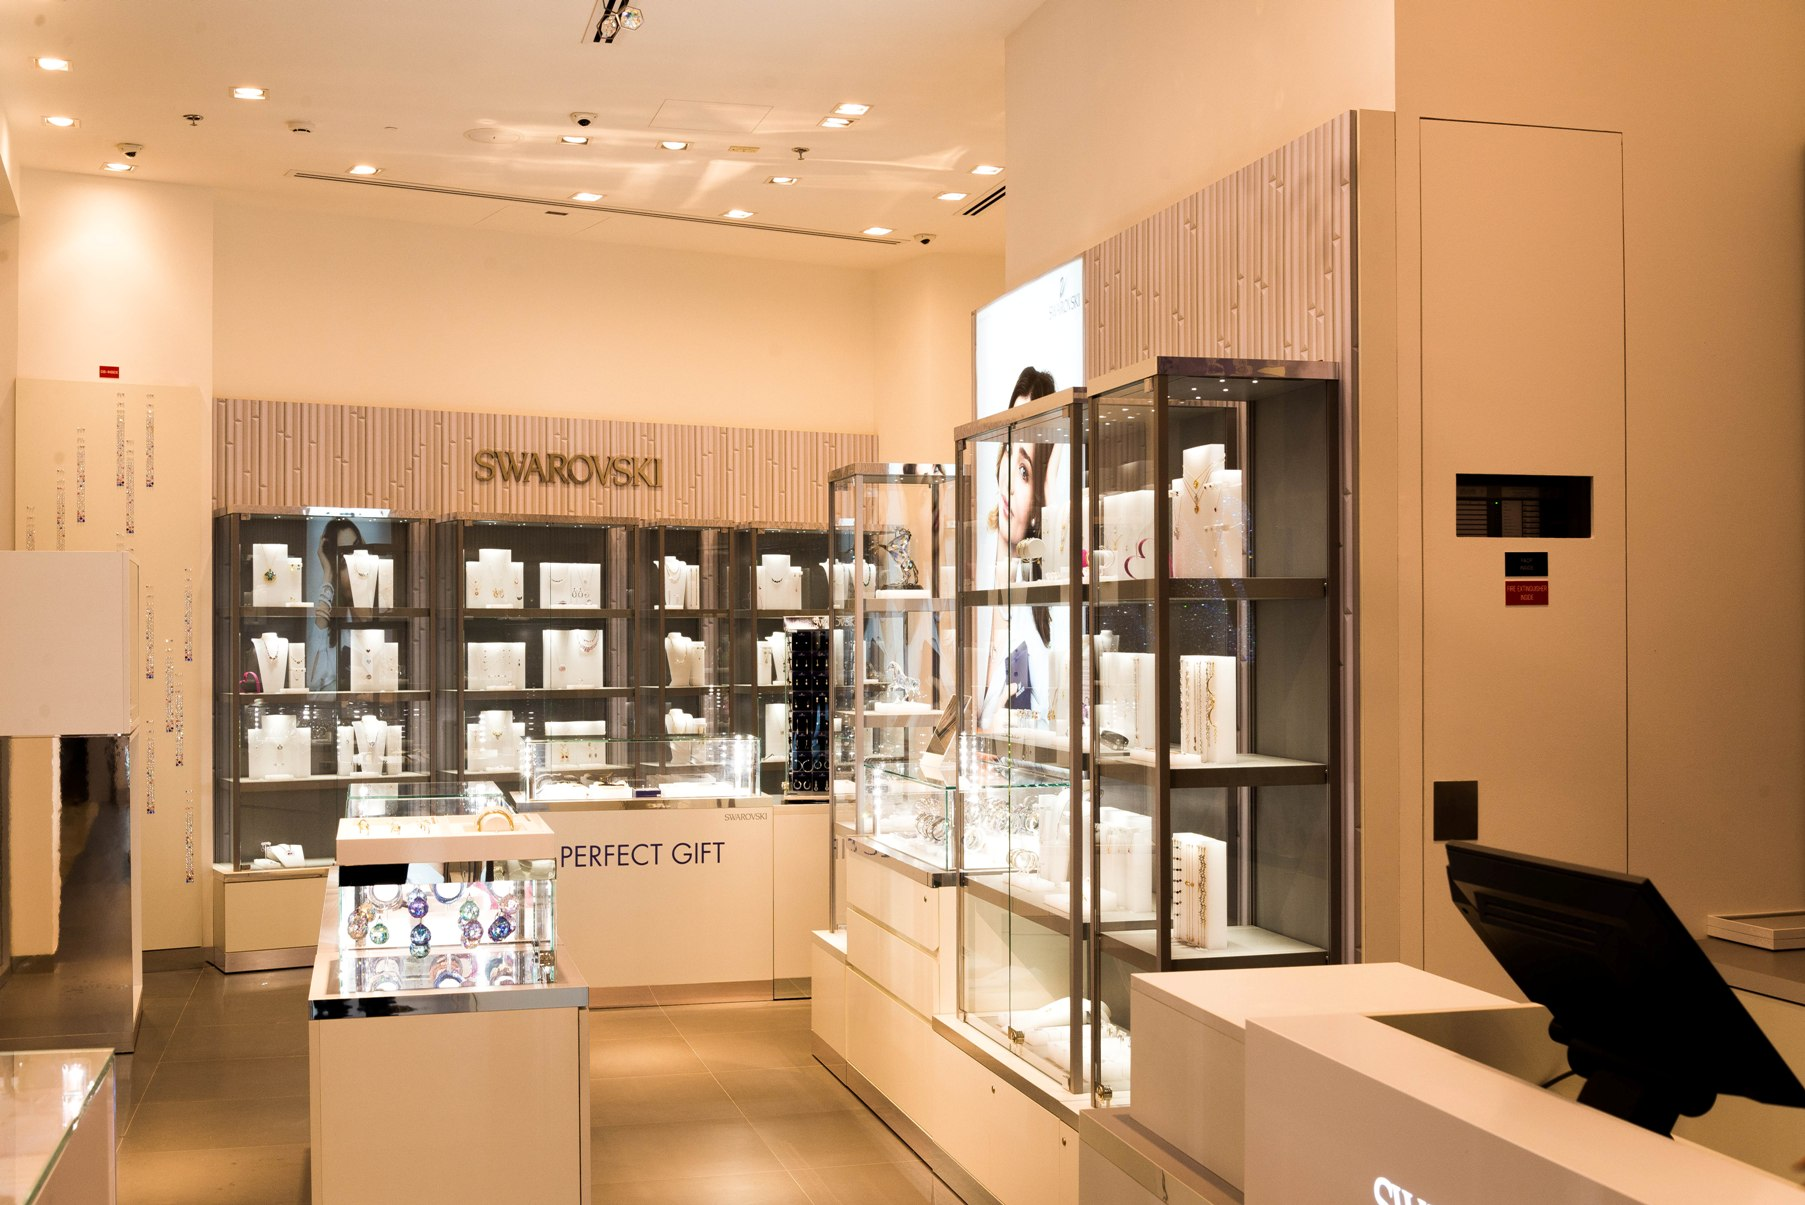 Swarovski-Al Ghurair Center